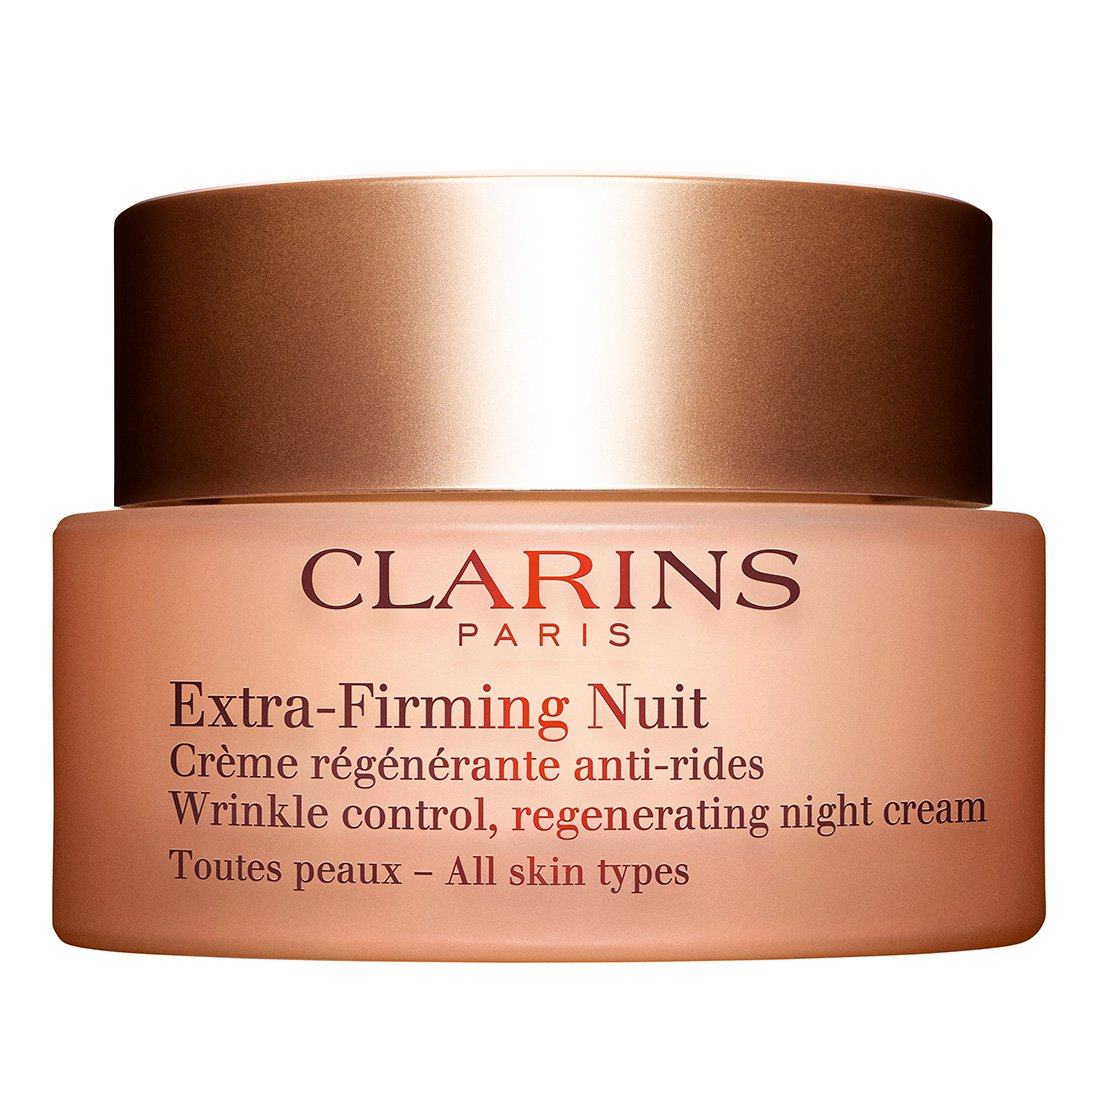 Extra-Firming Nuit Toutes peaux - CLARINS